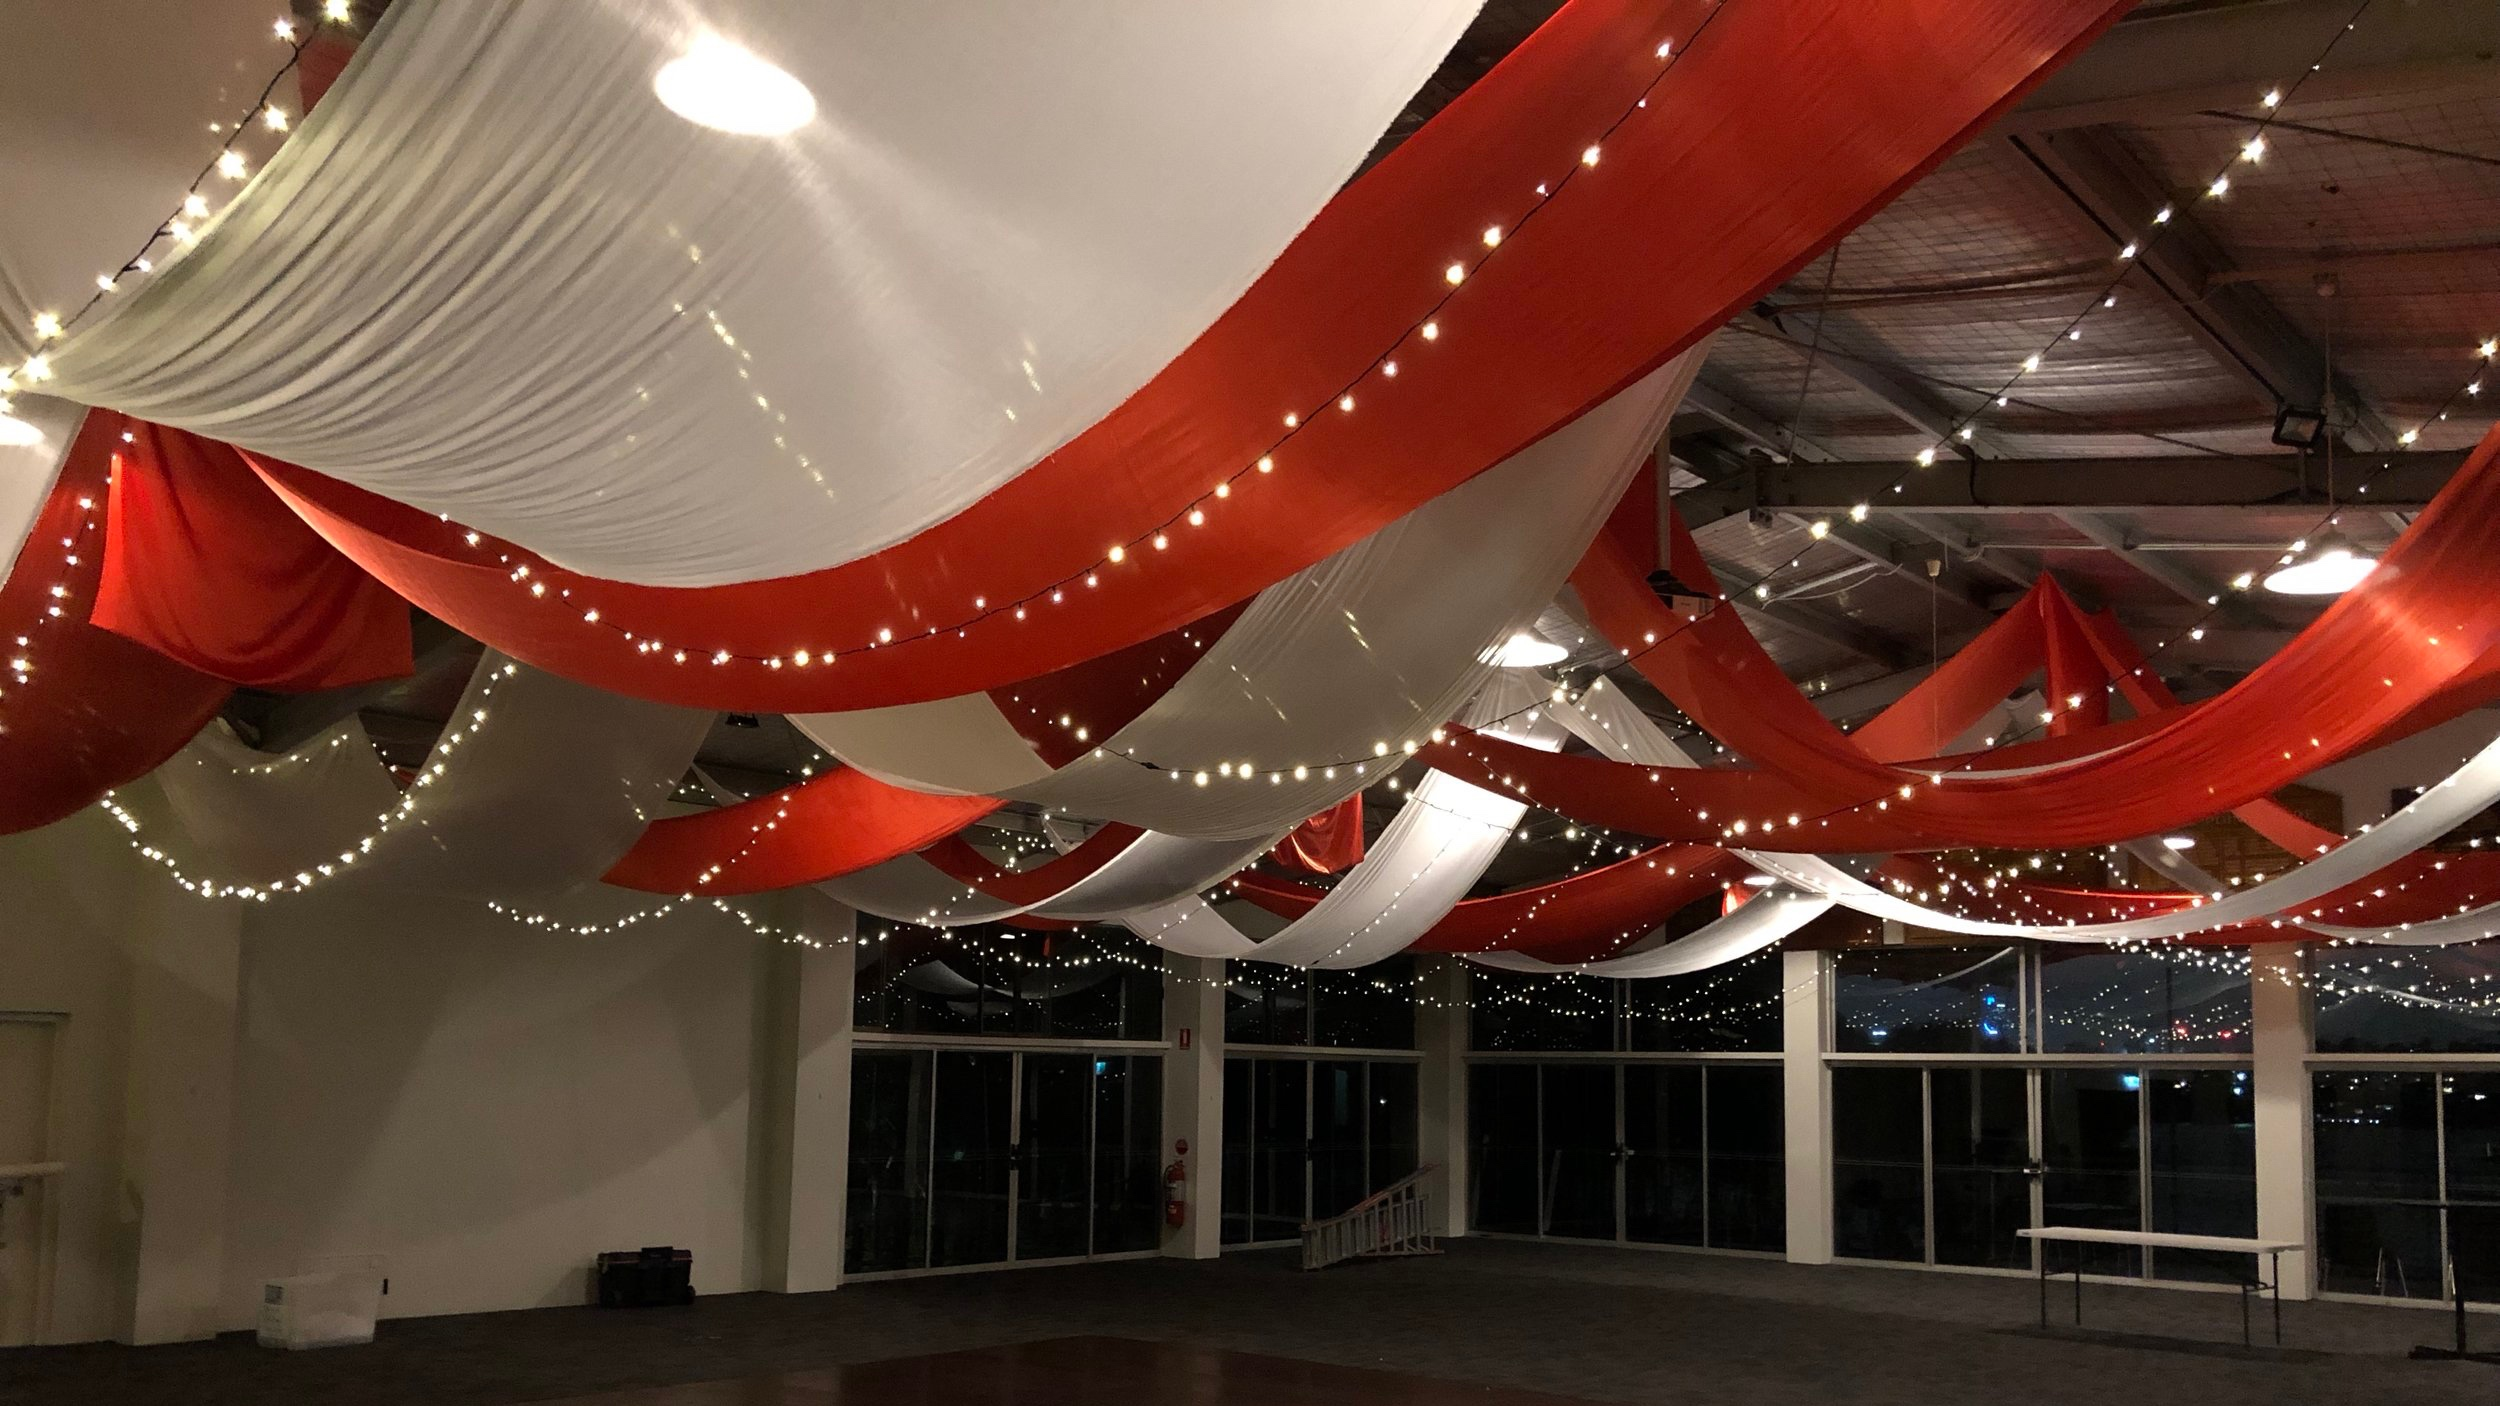 Coral and white silk ceiling drapes with fairy lights by Fairytale Events - Hunters Hill Sailing Club